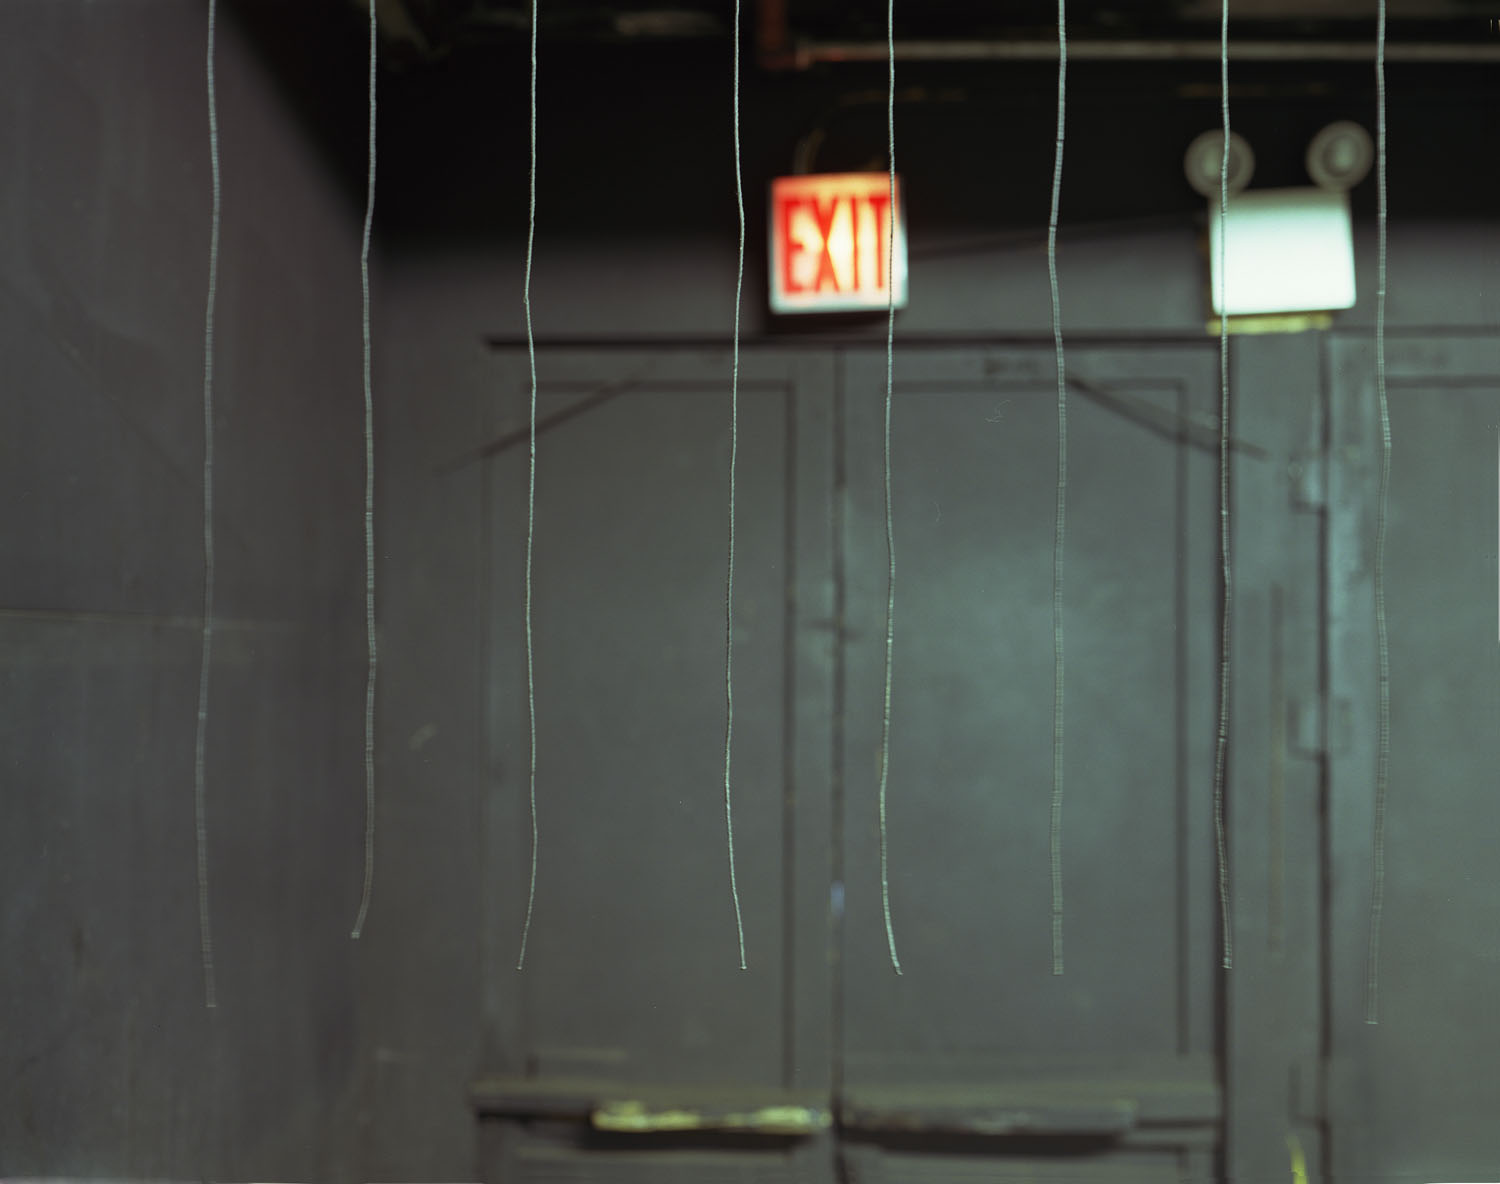 Exit sign with strings                               Spook-A-Rama, Coney Island, N.Y., 2004